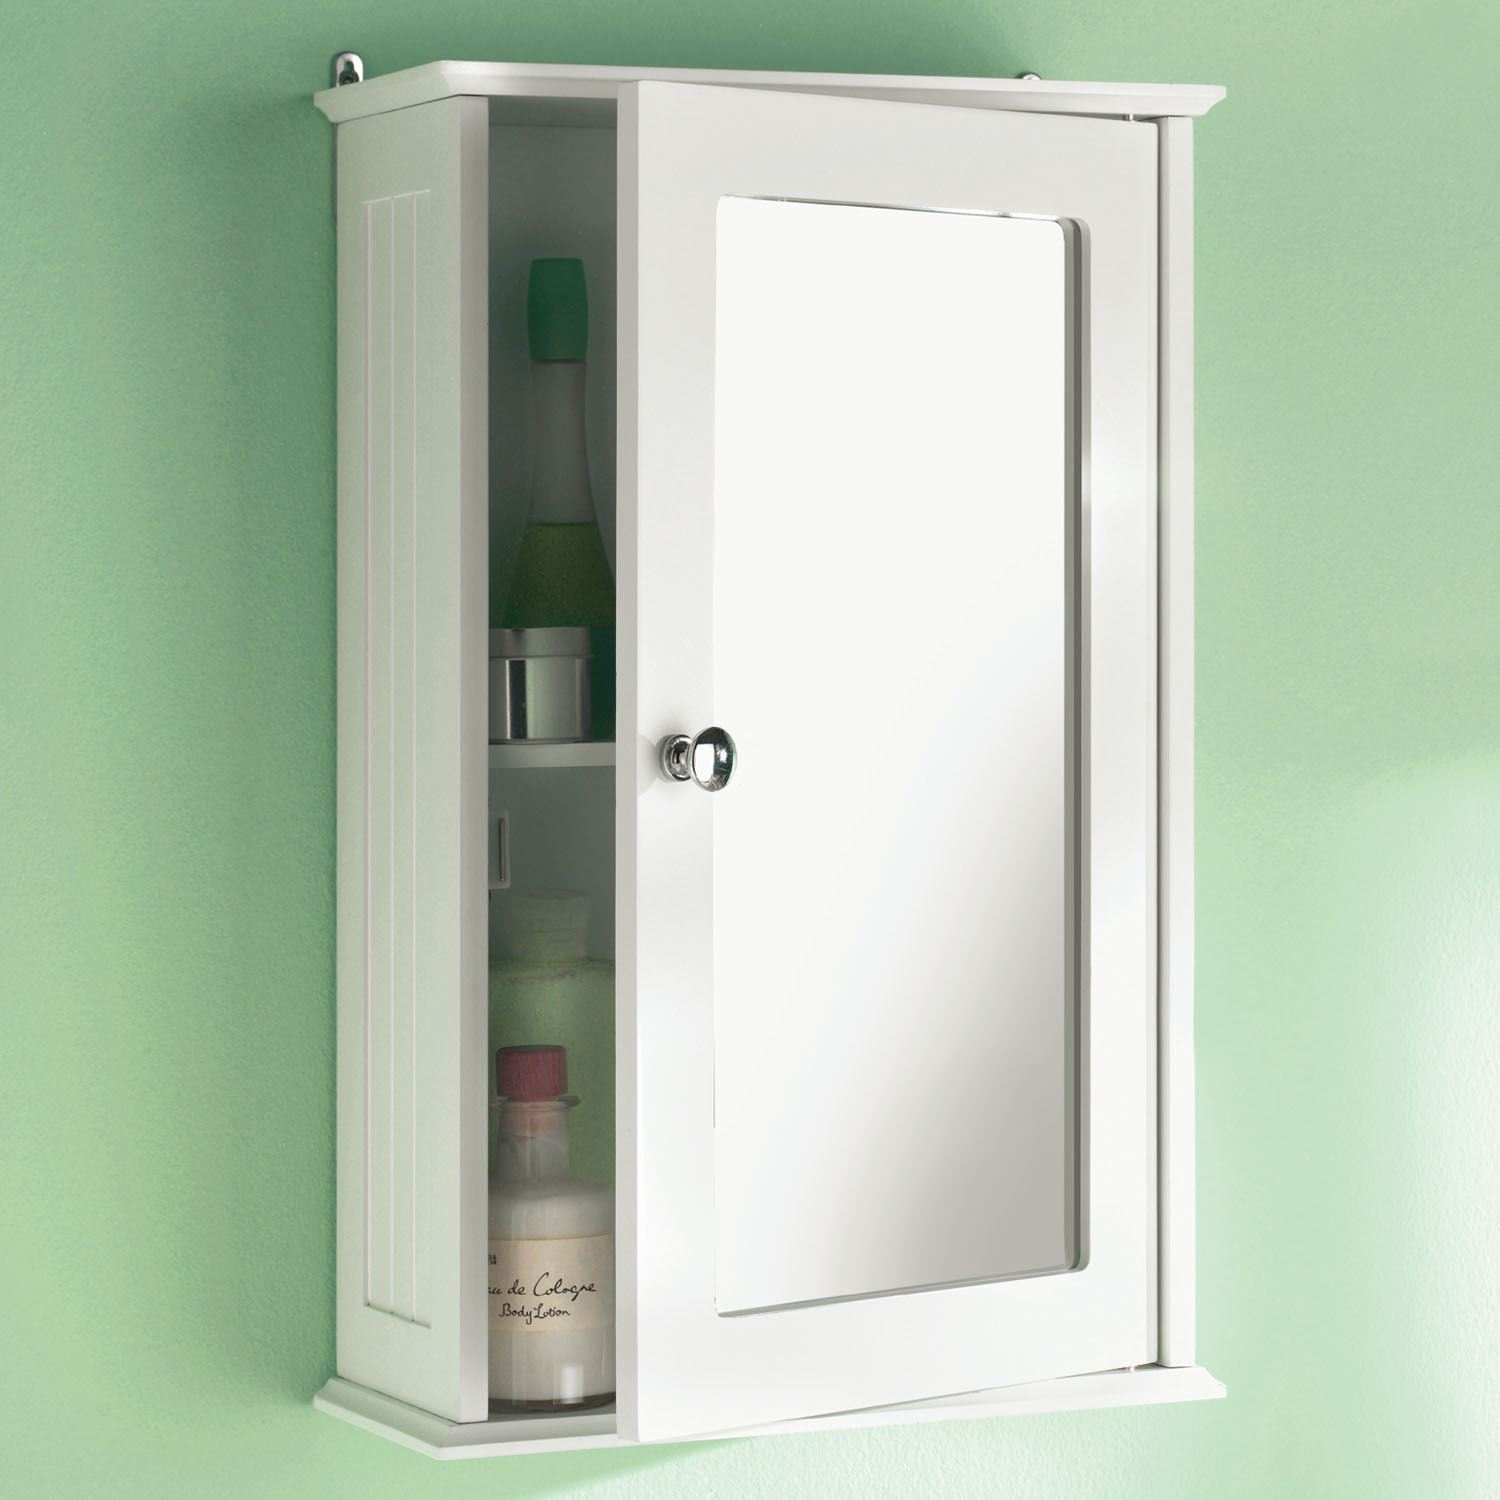 Bathroom storage units free standing - White Wooden Bathroom Cabinet Shelf Cupboard Bedroom Storage